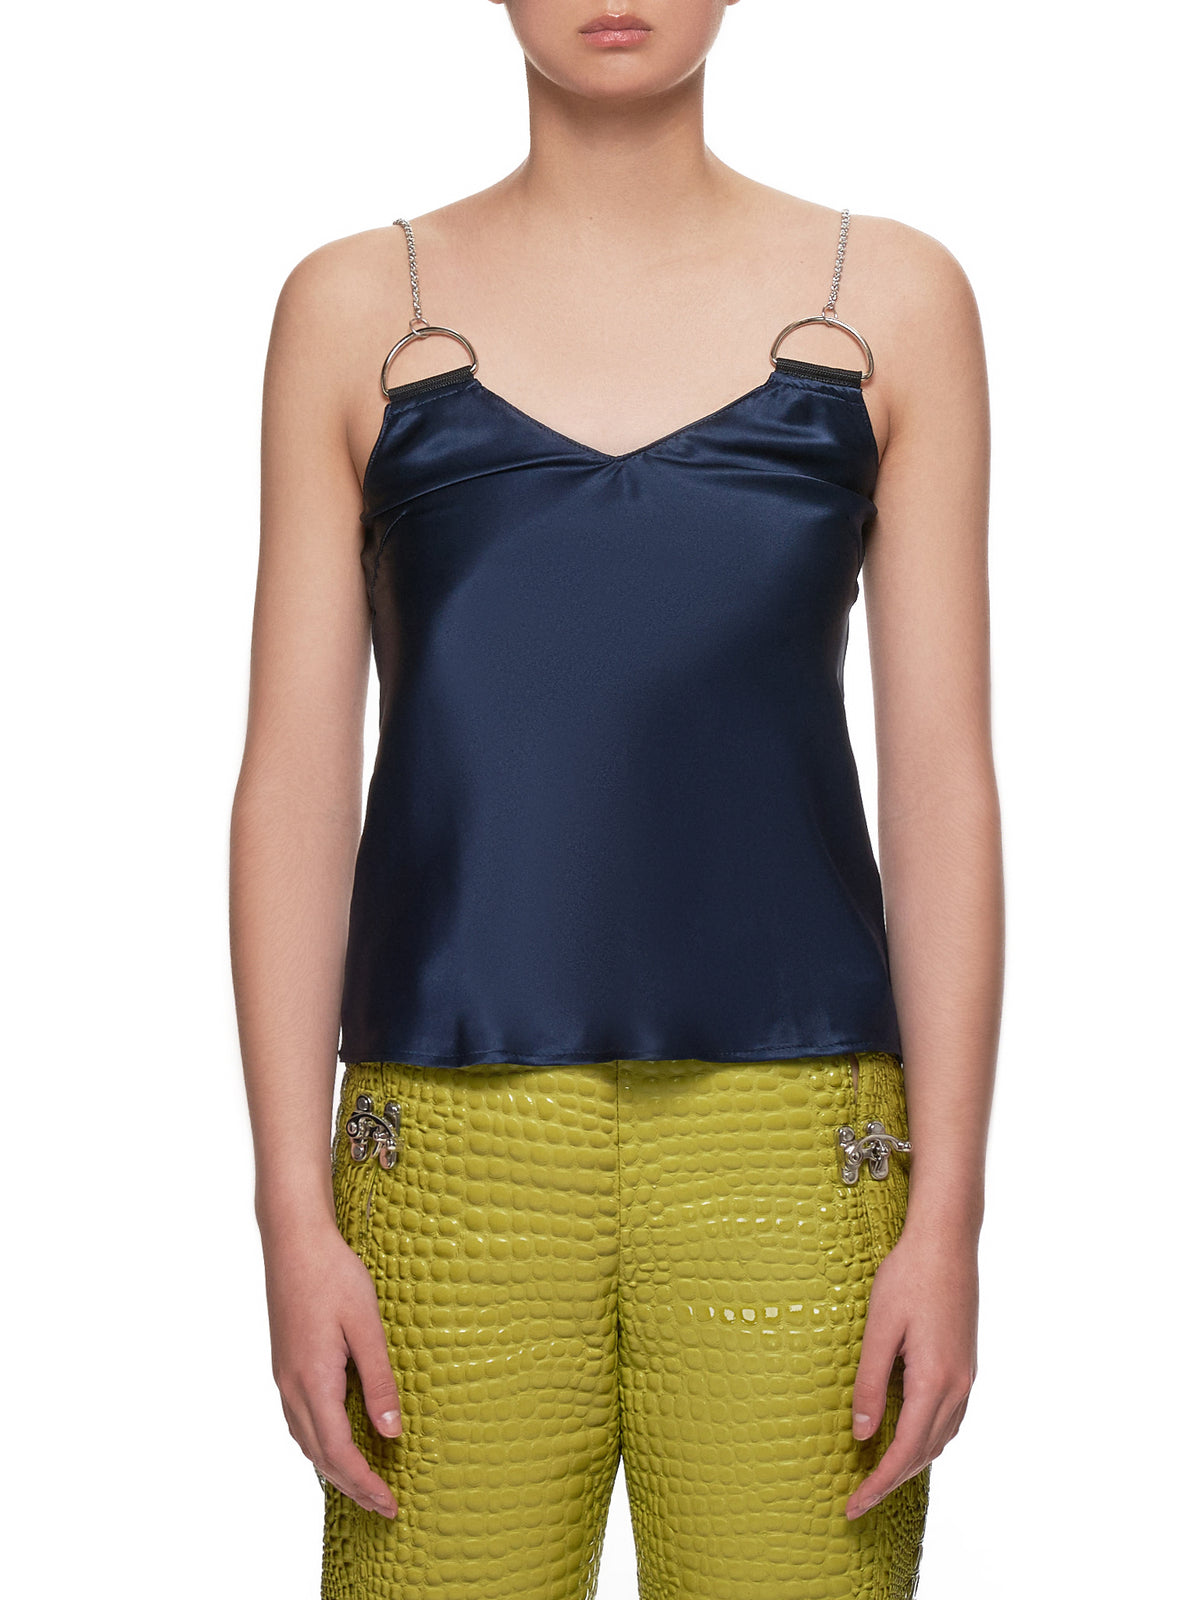 'Sagone' Top (SAGONE-DARK-BLUE)